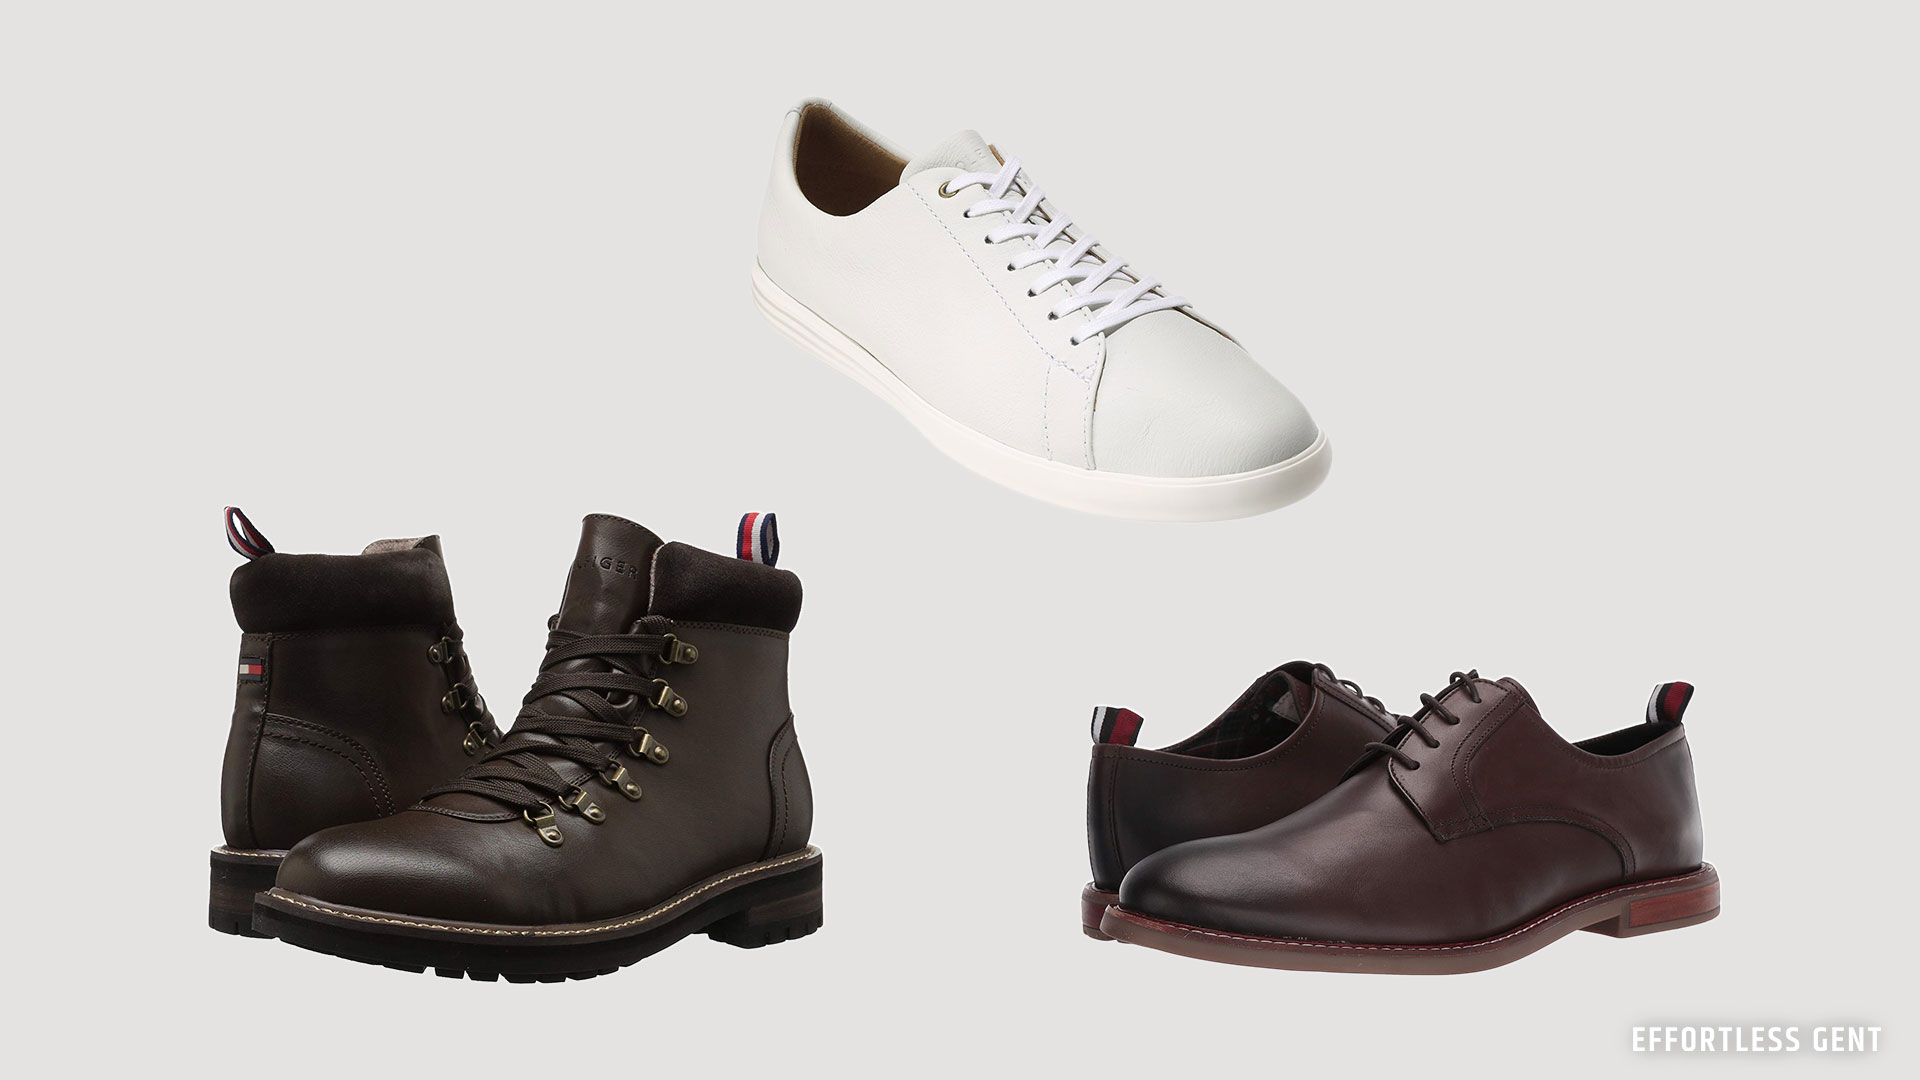 white sneakers, boots, and dress shoes for a man's budget minimal lean wardrobe